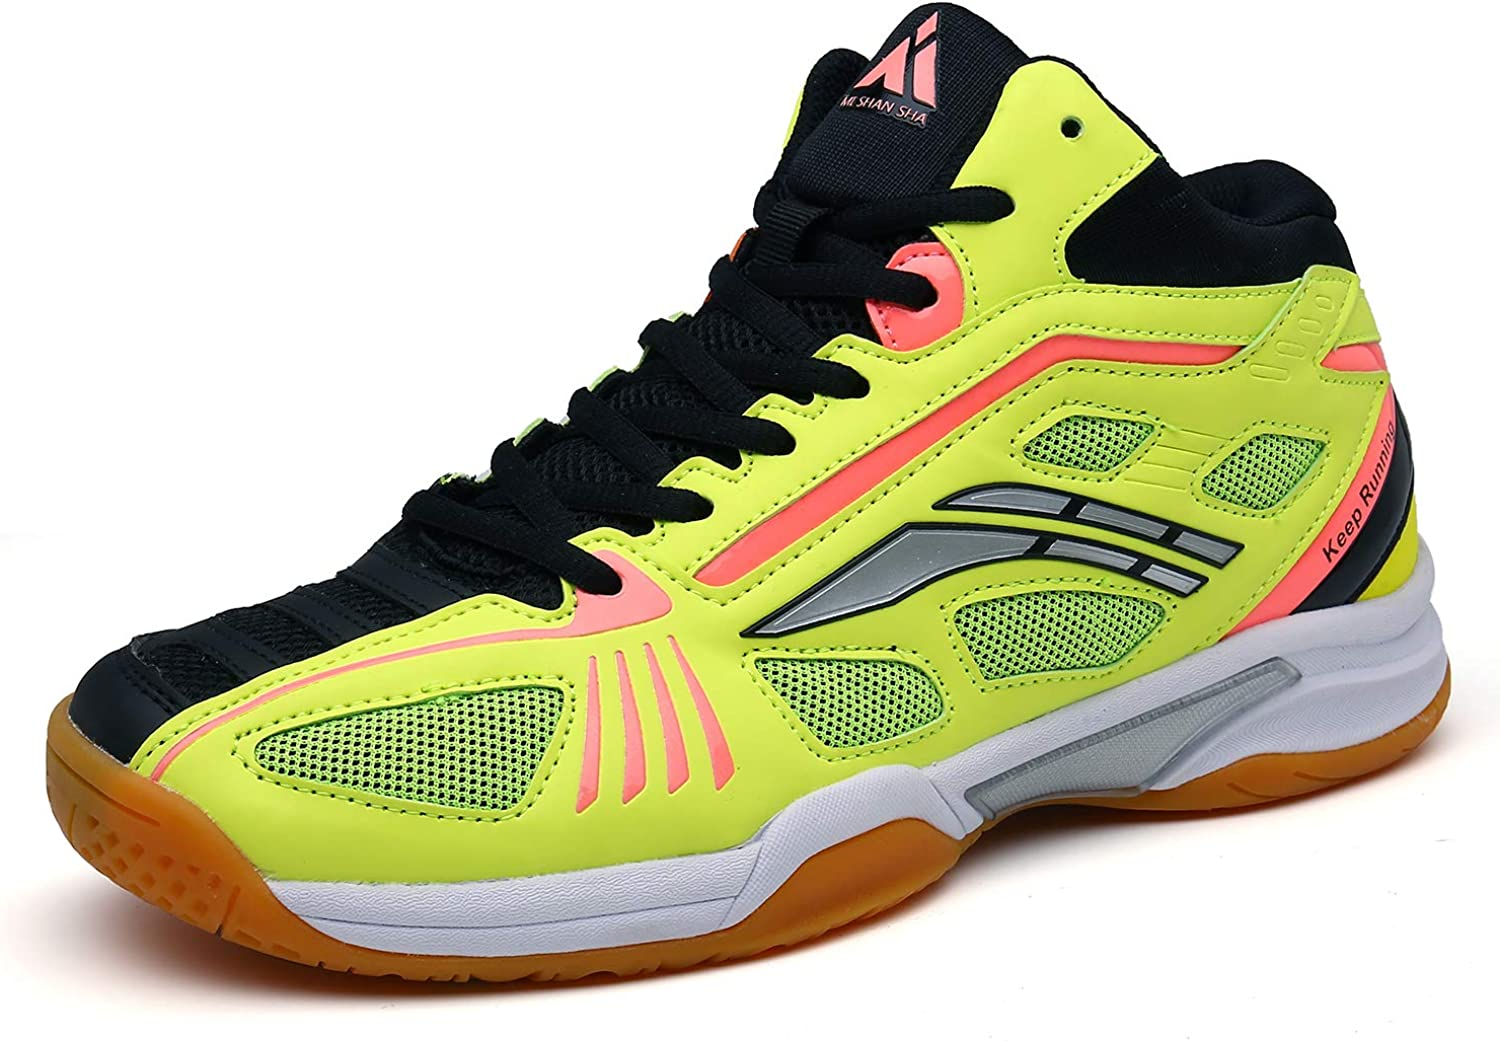 low price big sale discount sale Amazon.com | Mens Tennis Shoes Court Badminton Squash Training ...